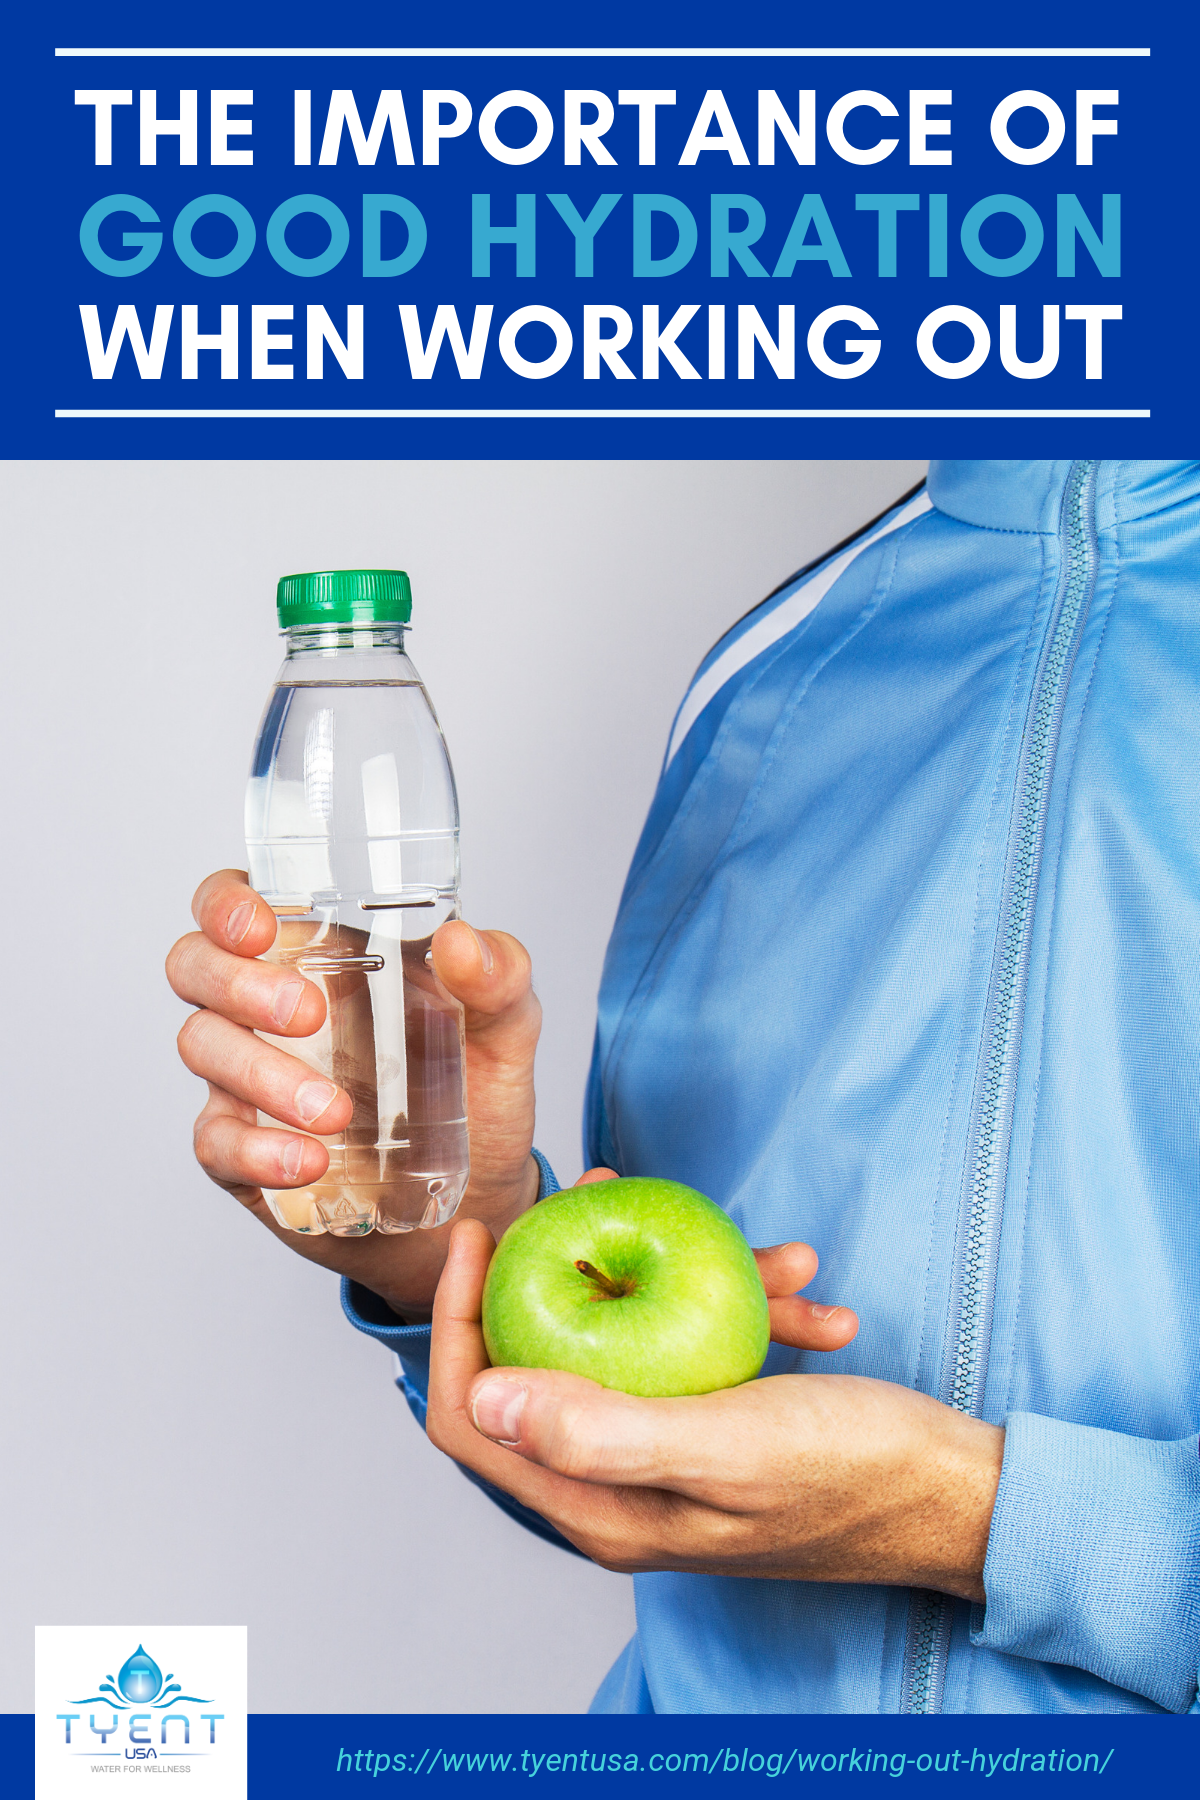 The Importance Of Good Hydration When Working Out https://www.tyentusa.com/blog/working-out-hydration/